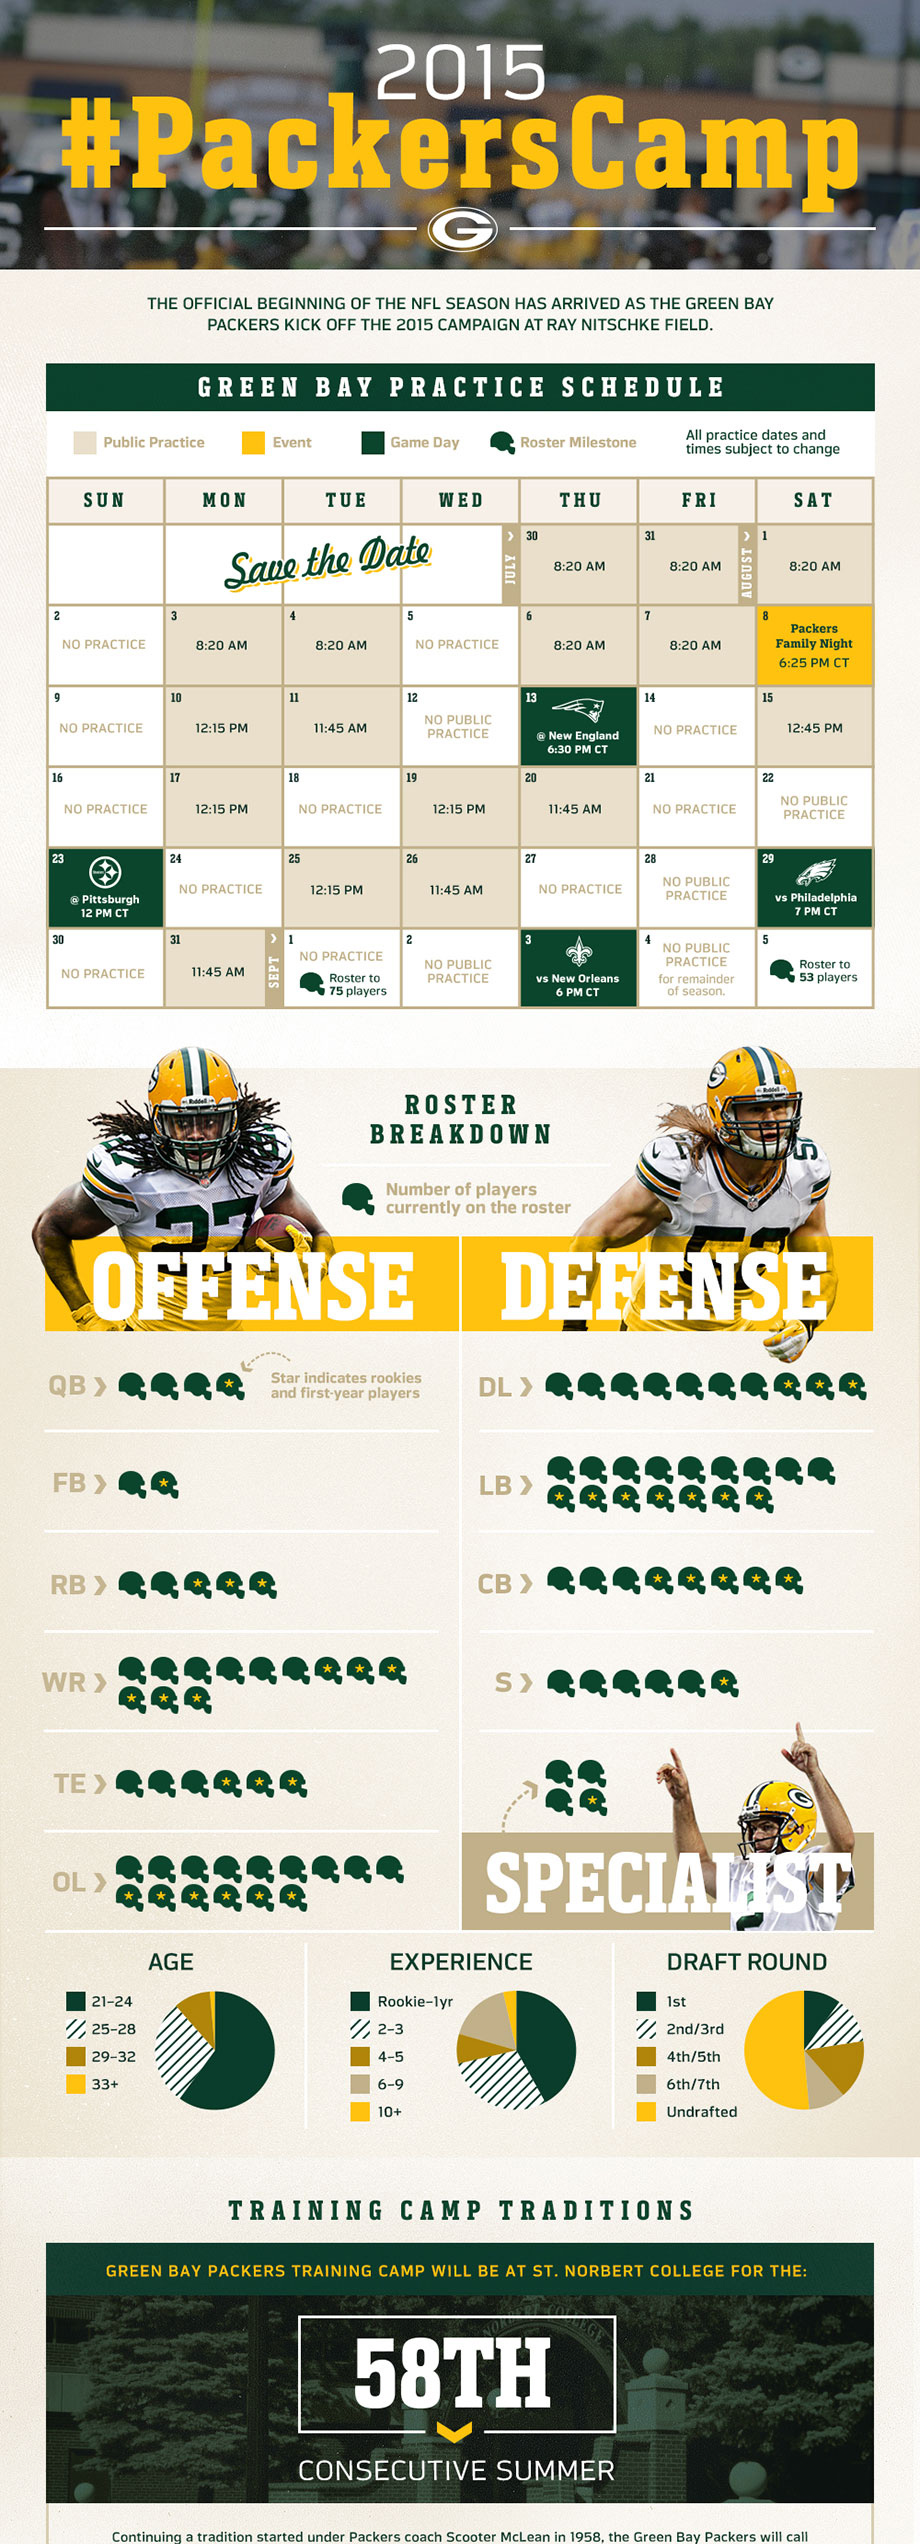 Green Bay Packers 2015 Training Camp Guide